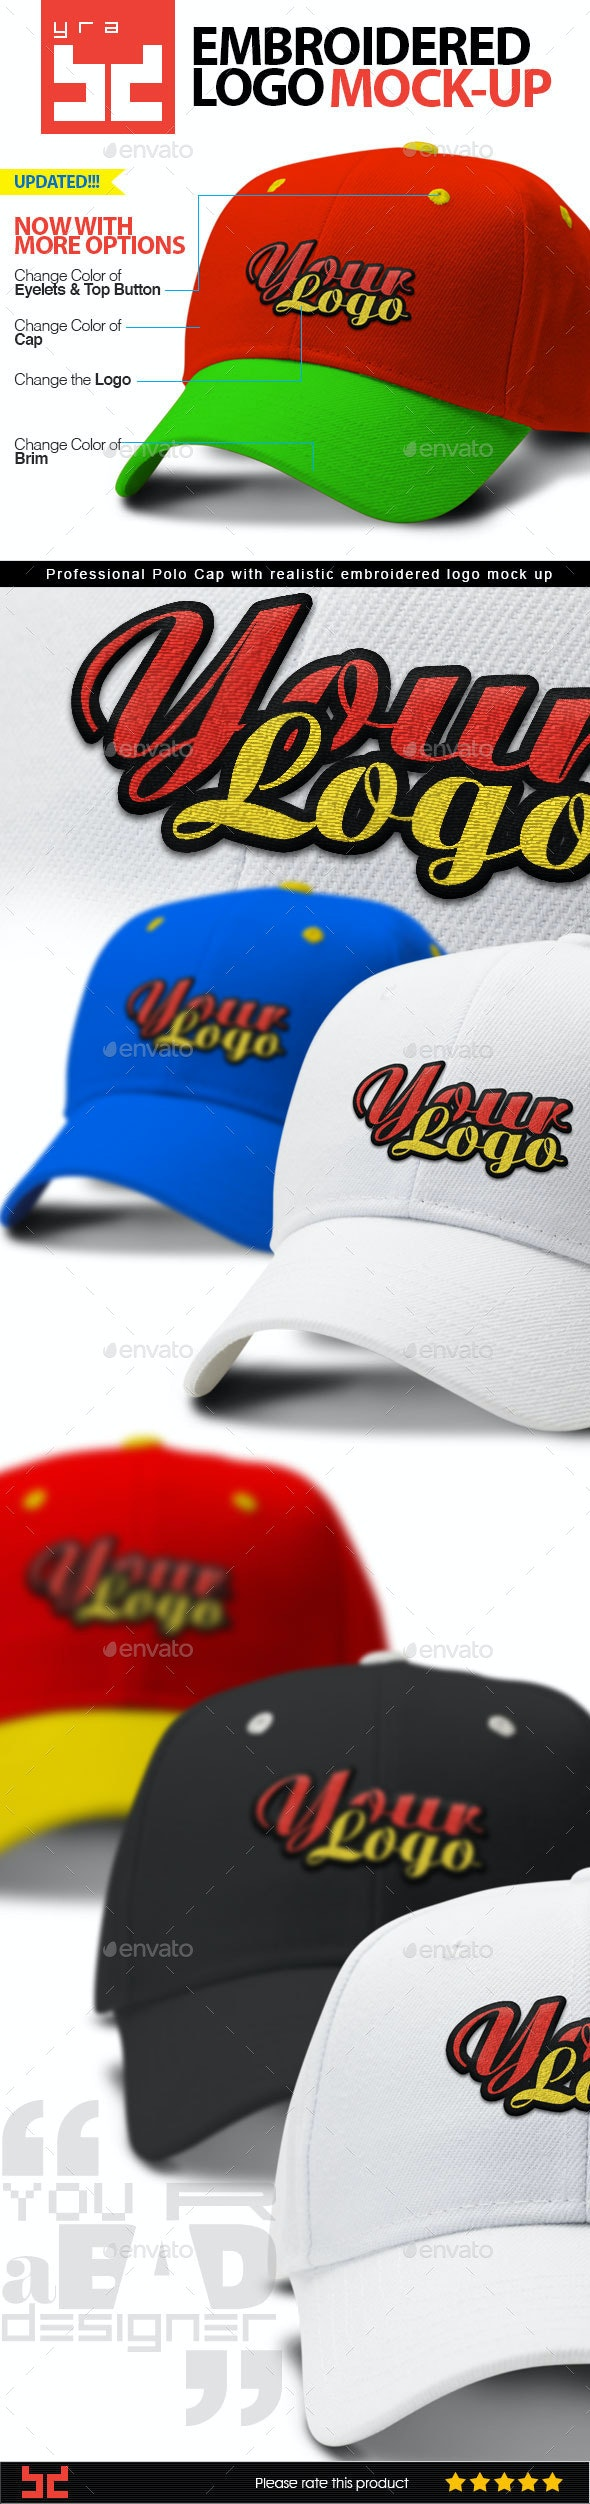 Polo Cap Mock-up with Embroidered Logo - Apparel Product Mock-Ups